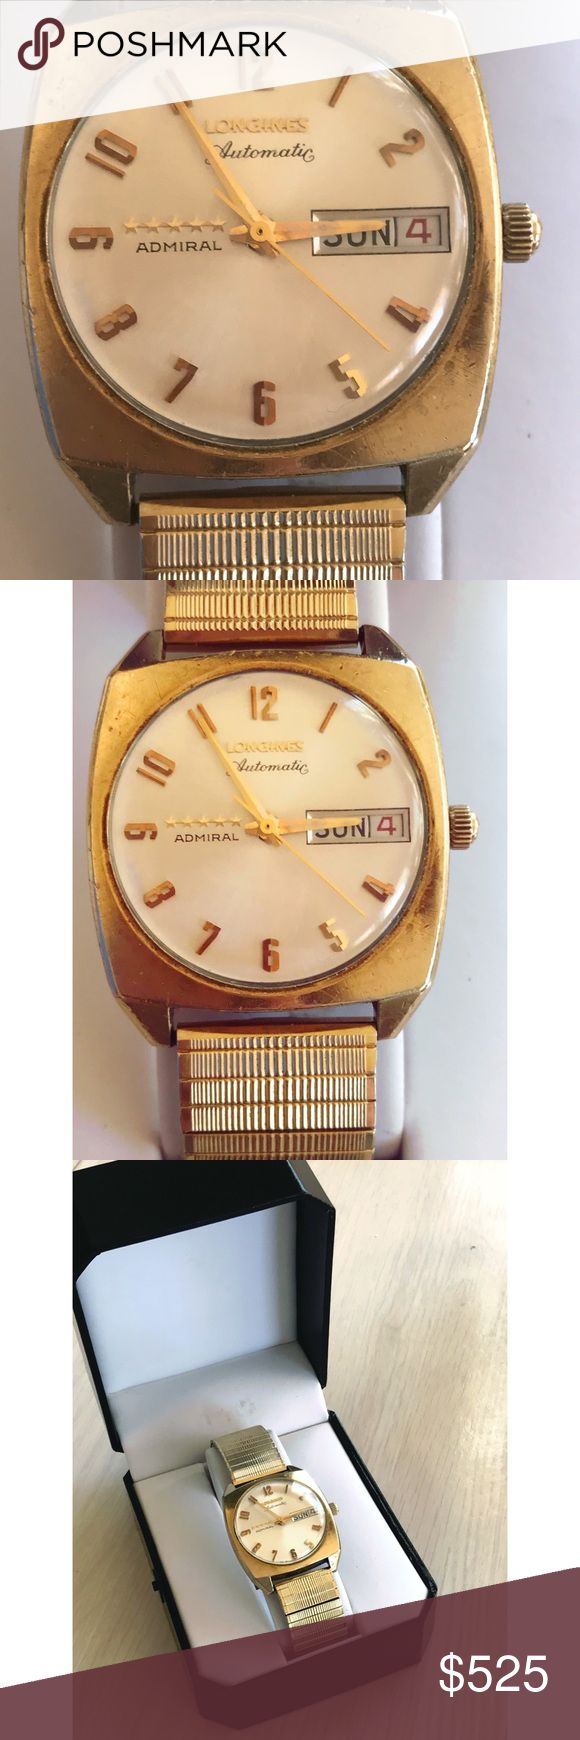 Vintage Longines admiral 5 Star watch Description Longines Admiral 5 Star 10K gold filled, calibre 342 auto c.1963-1966. 10K Gold fill monocoque case in Great overall condition. Vintage jewelry has marks & there is wear to the rear and wear on the the lugs as shown. GUC. Original signed crown, polished crystal. The movement is a calibre automatic, superb quality with a circular design rotor. Needs 1100 wrench to reach interior mechanisms. Works GREAT! *have not been able to adjust…